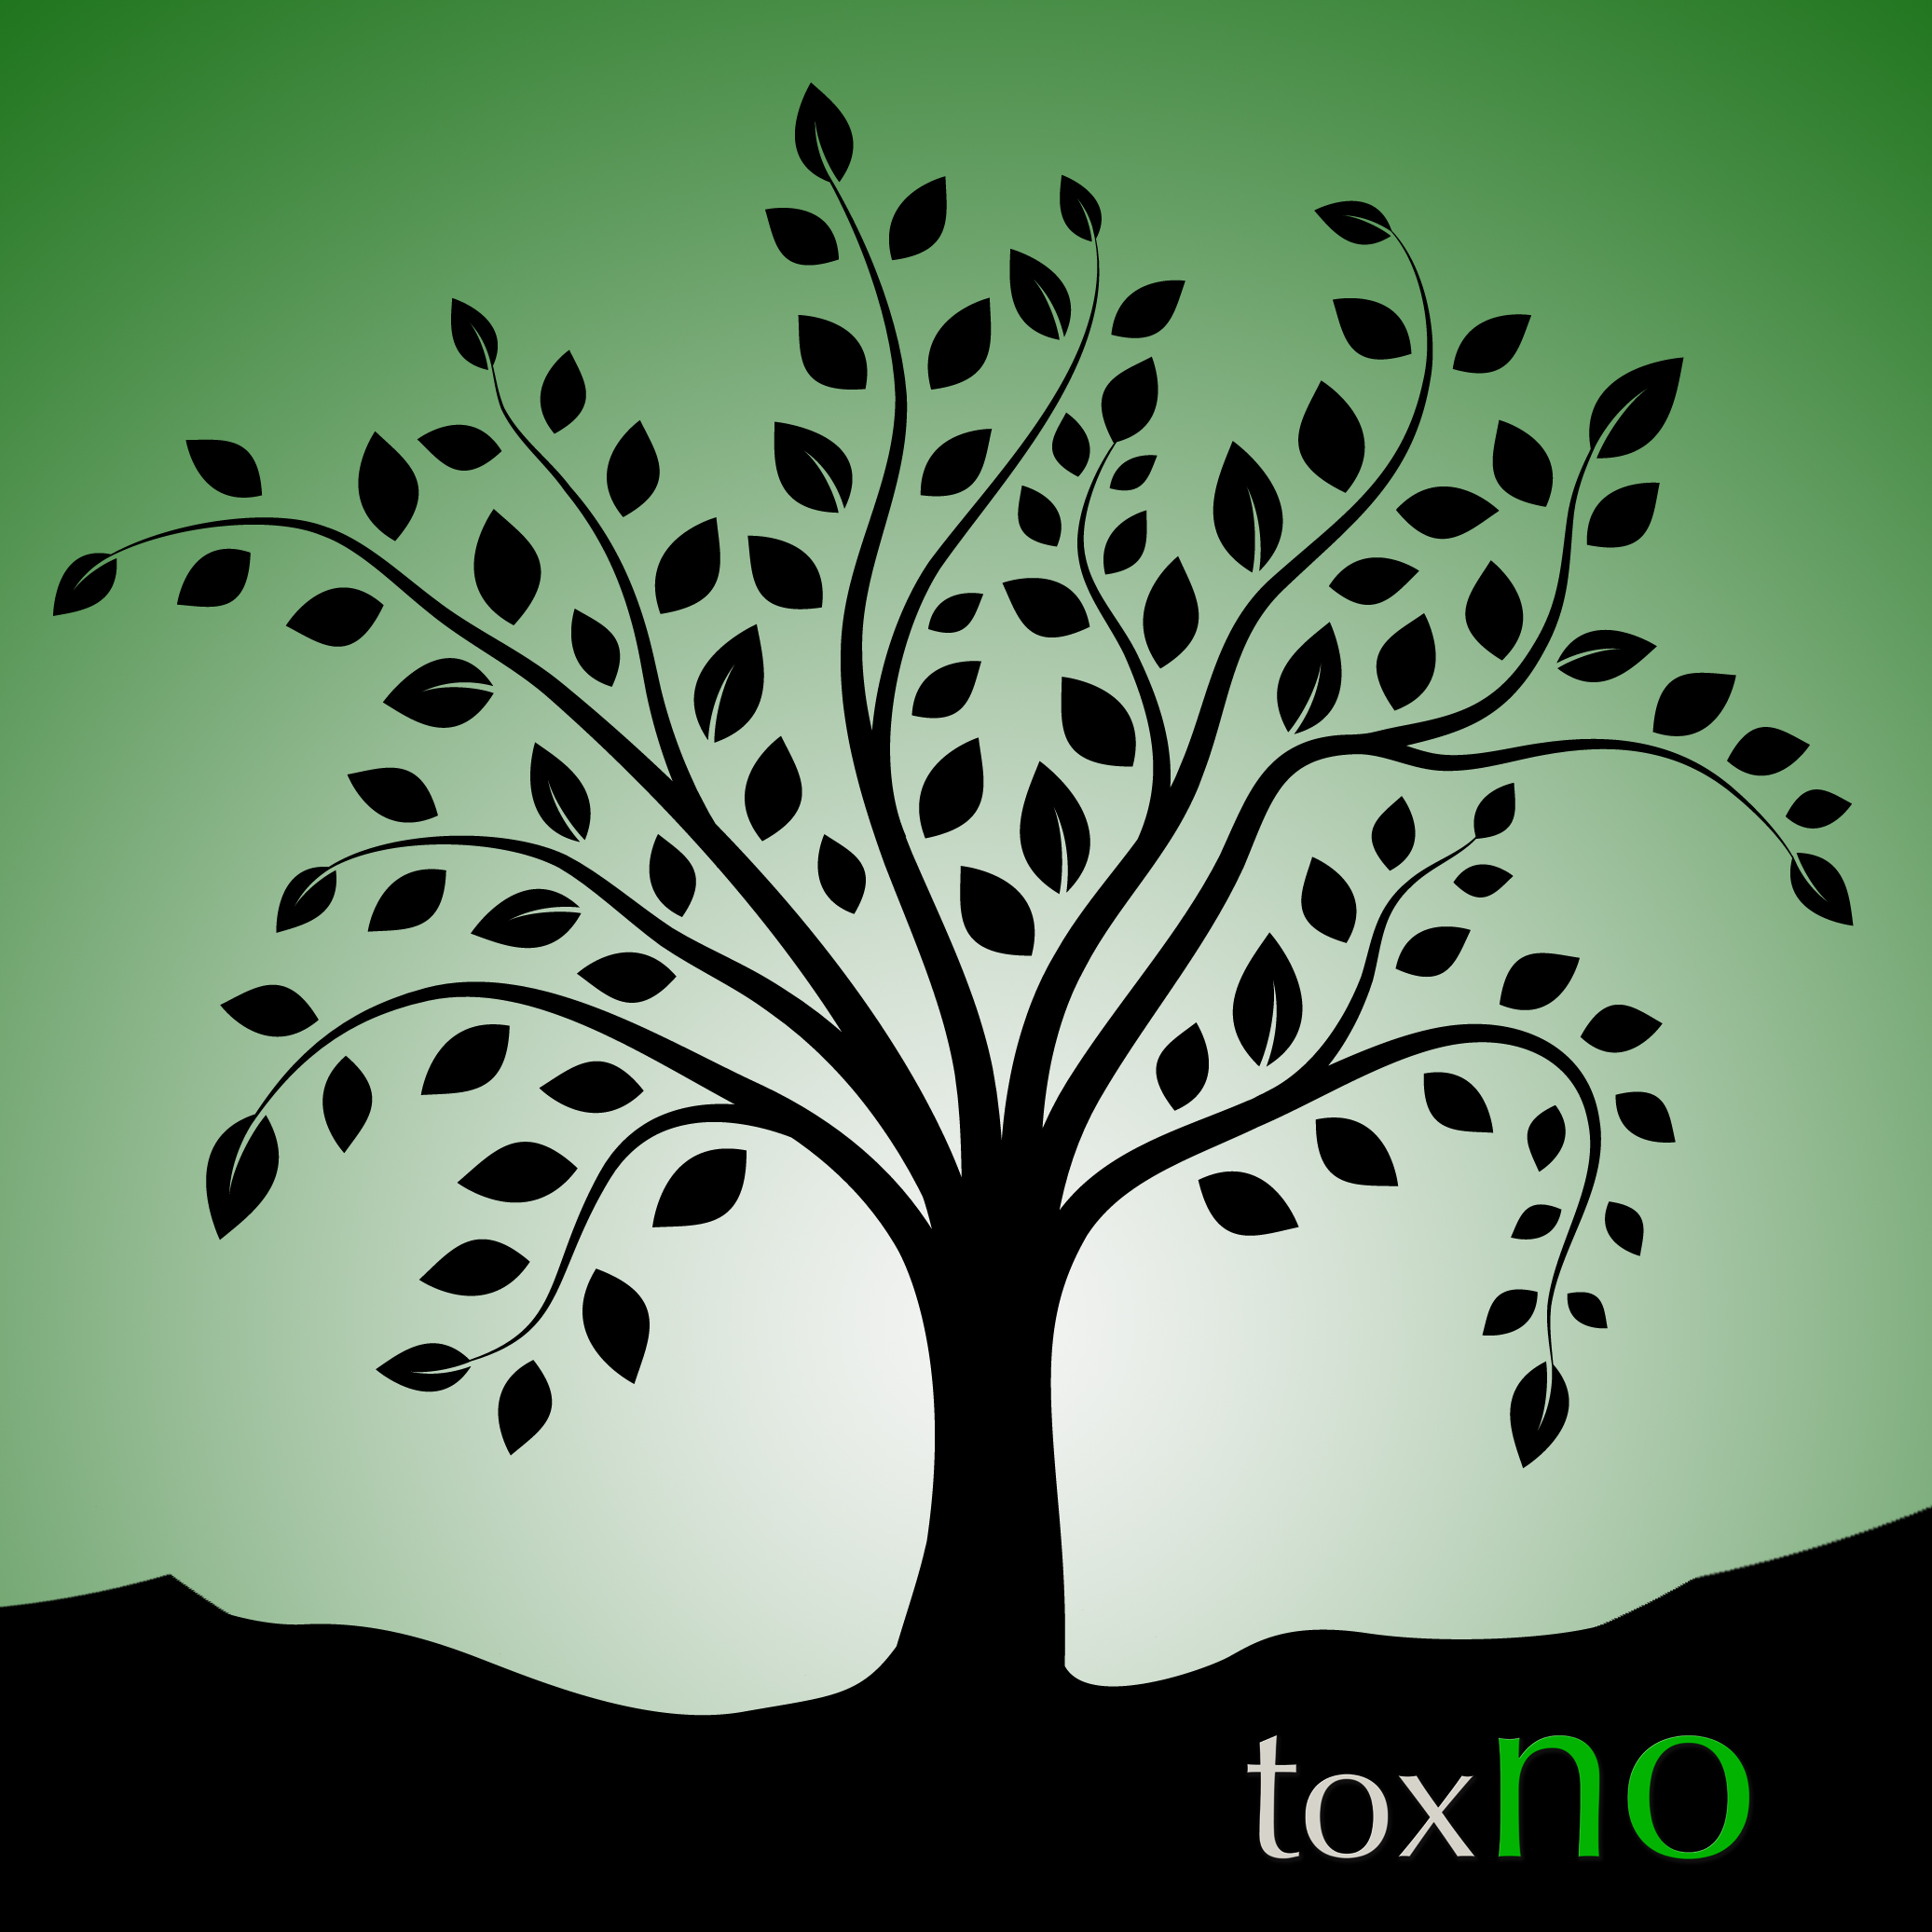 tree-toxno-name-green-2000